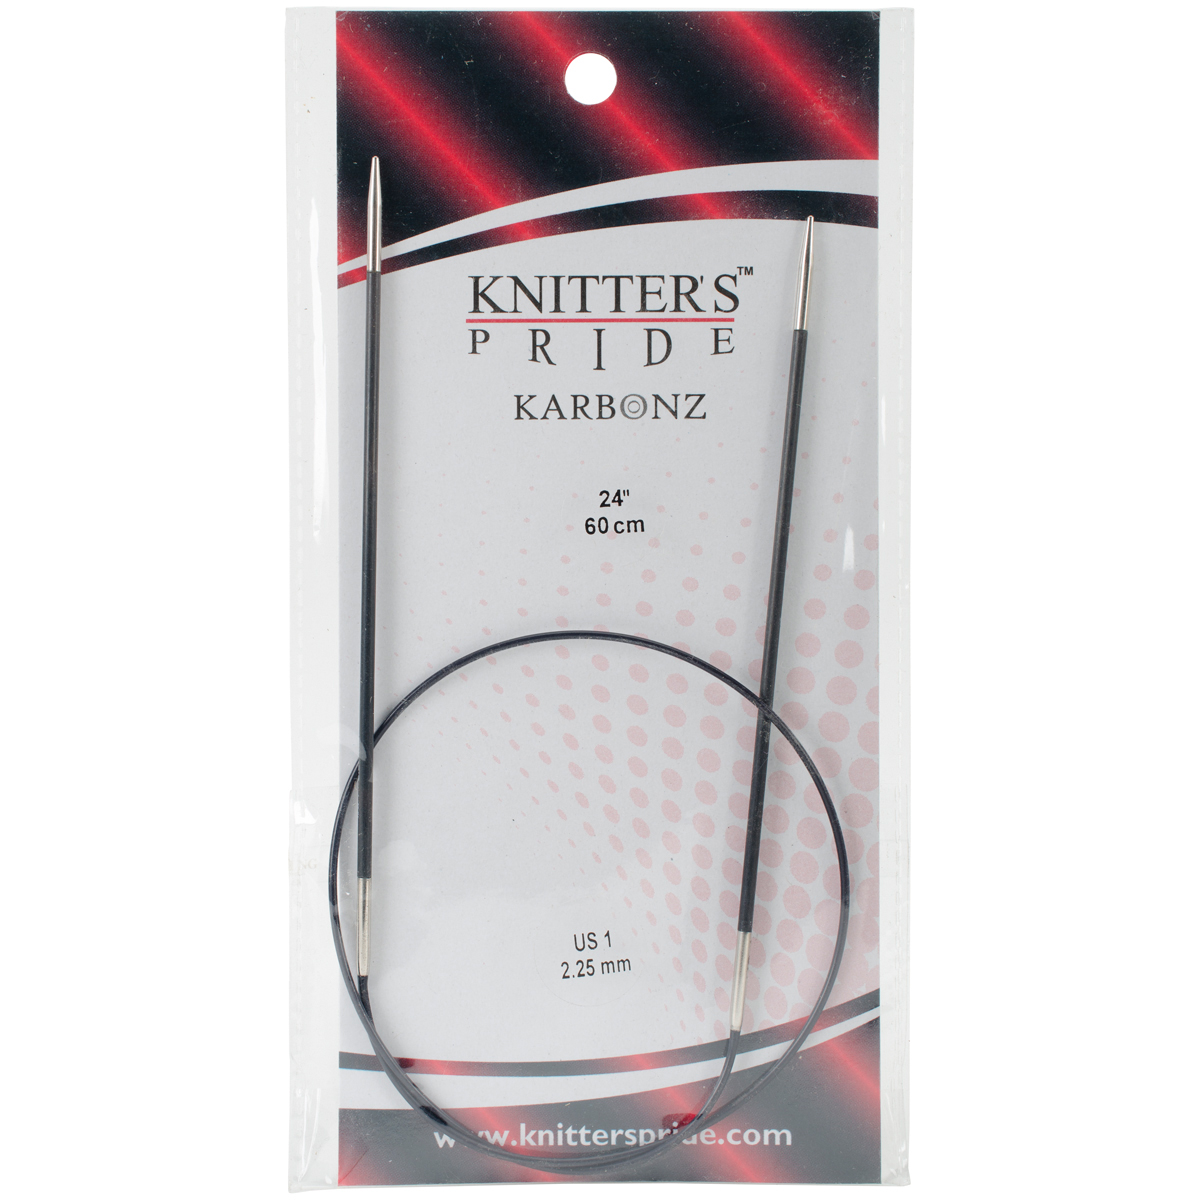 Knitter's Pride-Karbonz Fixed Circular Needles 24-Size 1/2.25mm